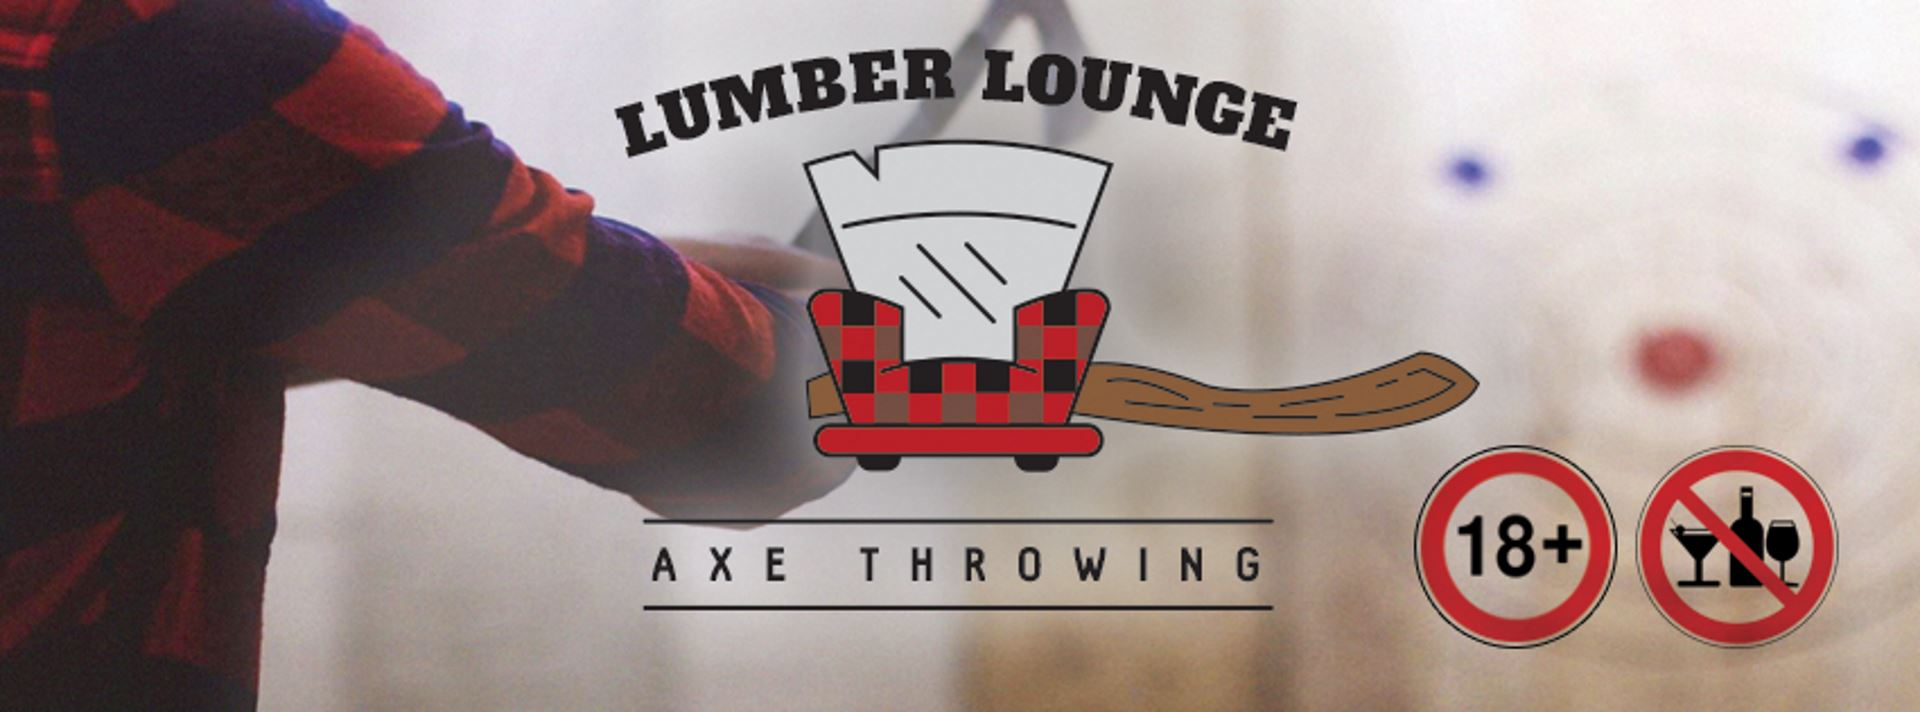 Axe Throwing in Carlisle - Lumber Lounge